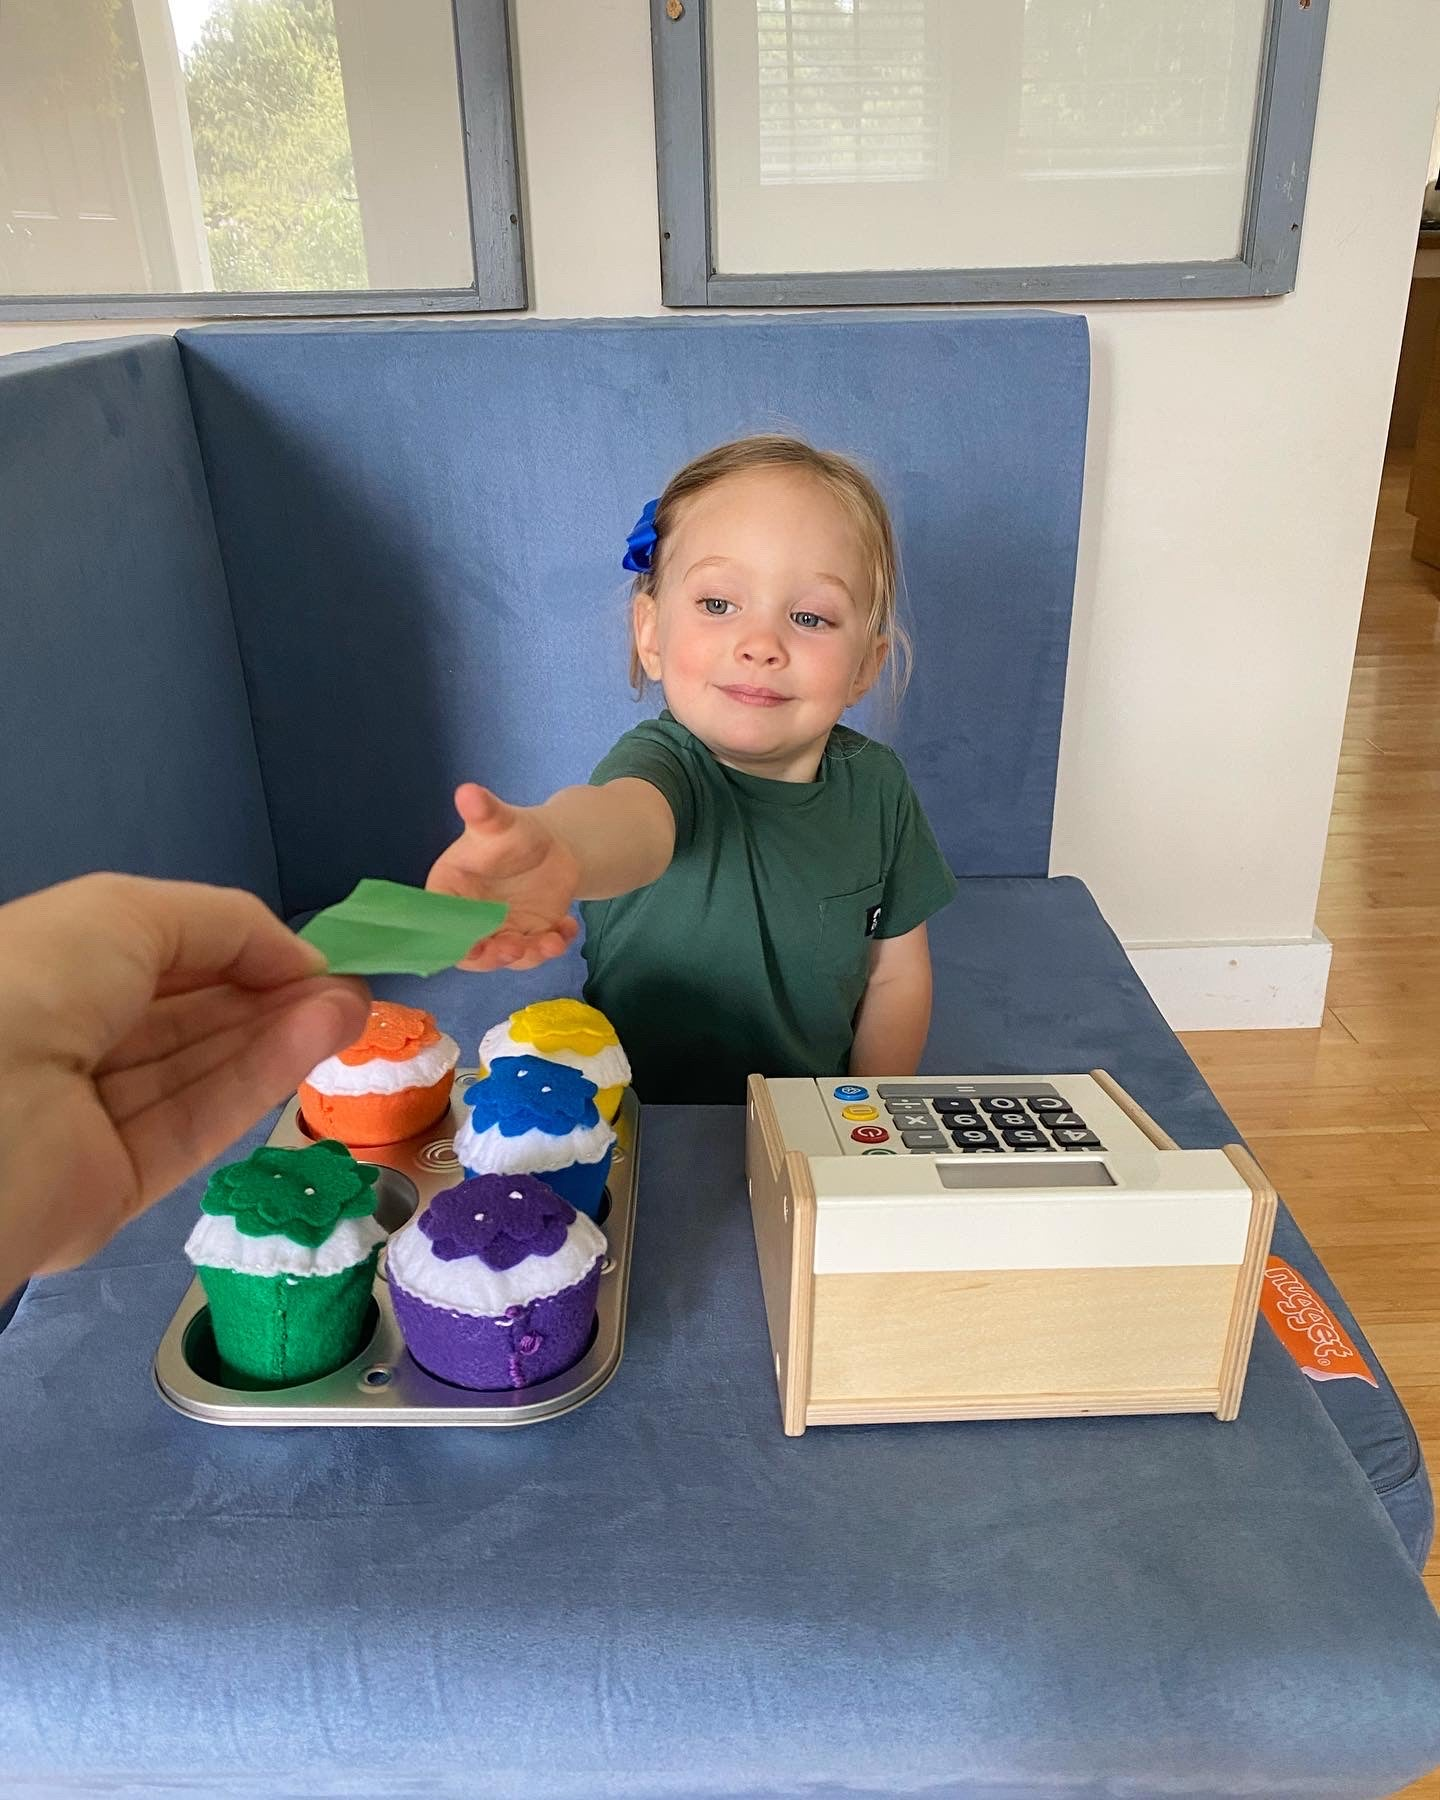 """Child reaching for play money from a """"customer"""" at her cupcake stand, made with a Nugget and a toy cash register and plush cupcakes"""